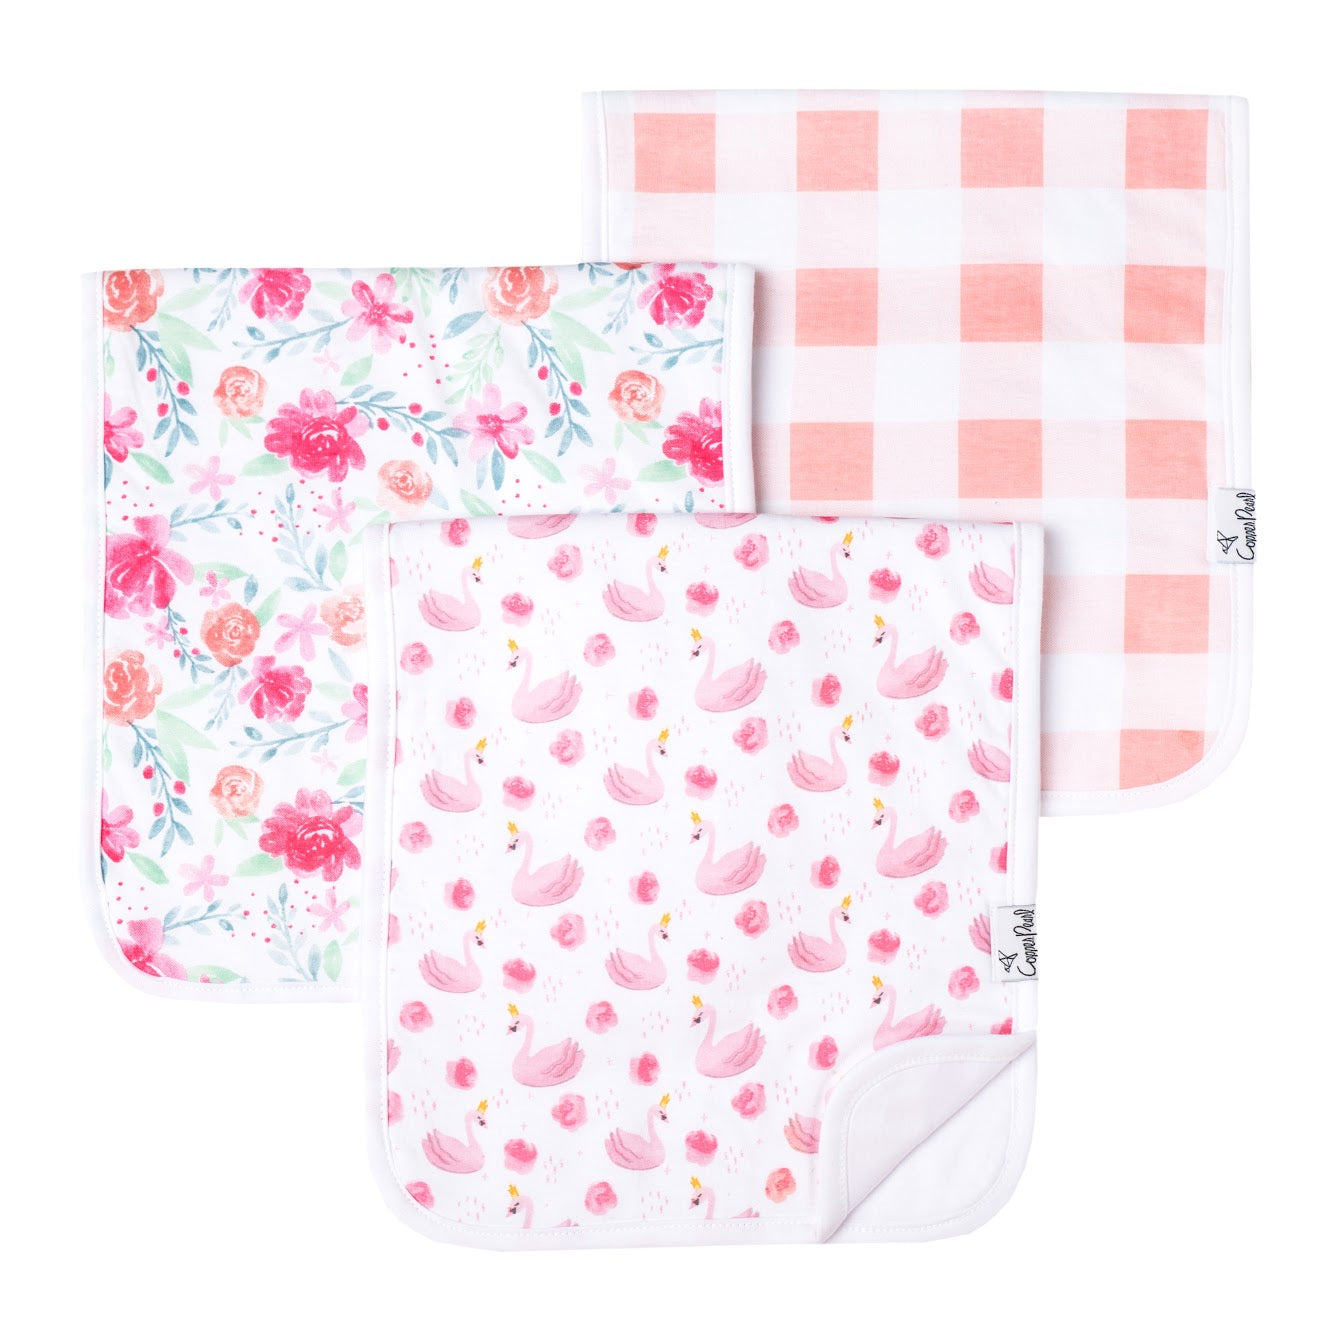 June Burp Cloth Set (3-pack)